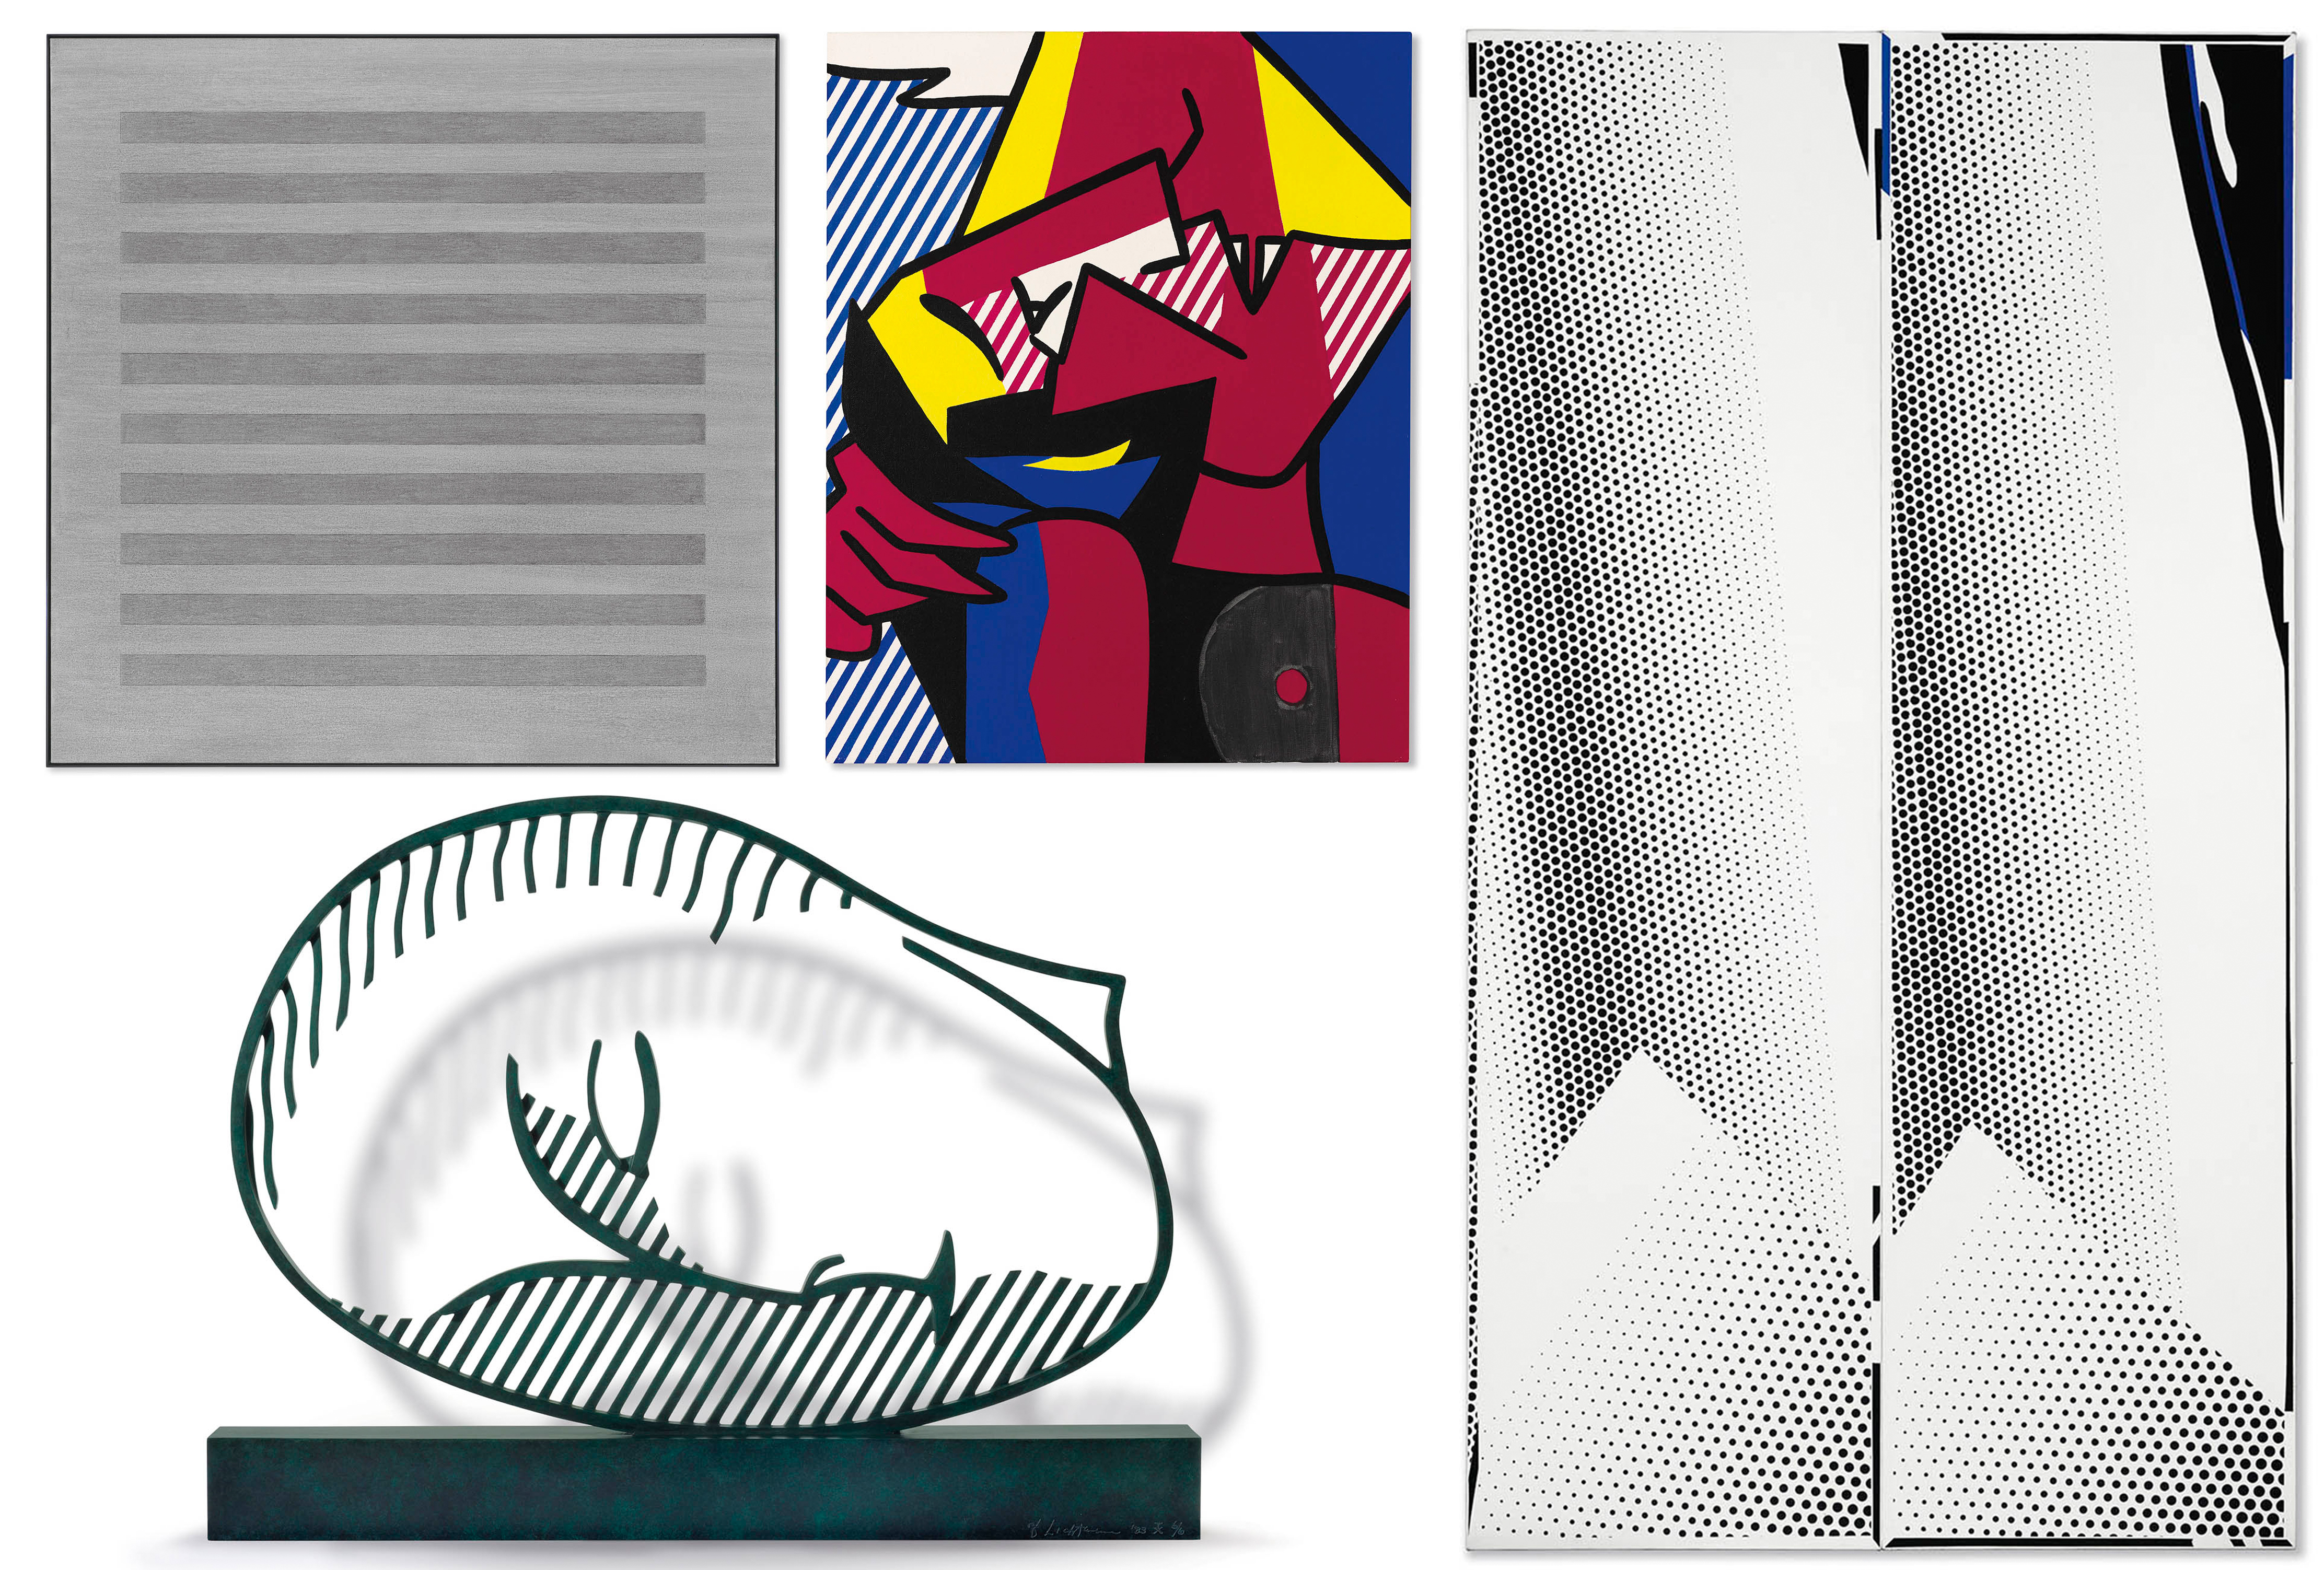 Pieces in Robert Olnick's art collection (clockwise from left: An acrylic and graphite-on-canvas work from 1983 by Agnes Martin, Despair, from 1979, by Roy Lichtenstein, Double Mirror, from 1970, by Roy Lichtenstein and a 1983 patinated bronze sculpture by Roy Lichtenstein) (credit: Christie's)